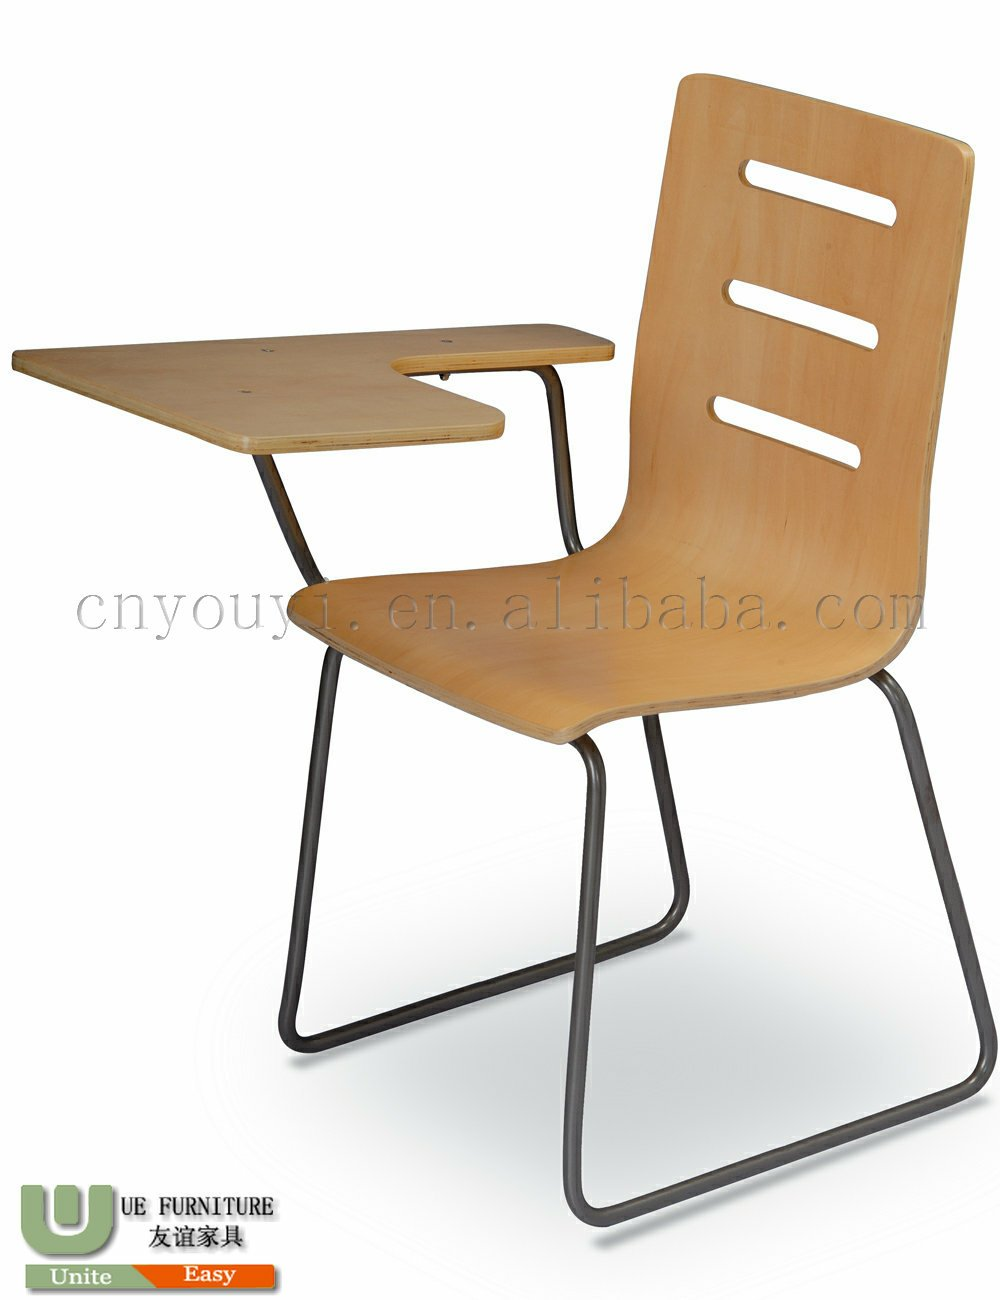 Chairs With Tables Chairs With Tables Suppliers And Manufacturers At Alibaba Com